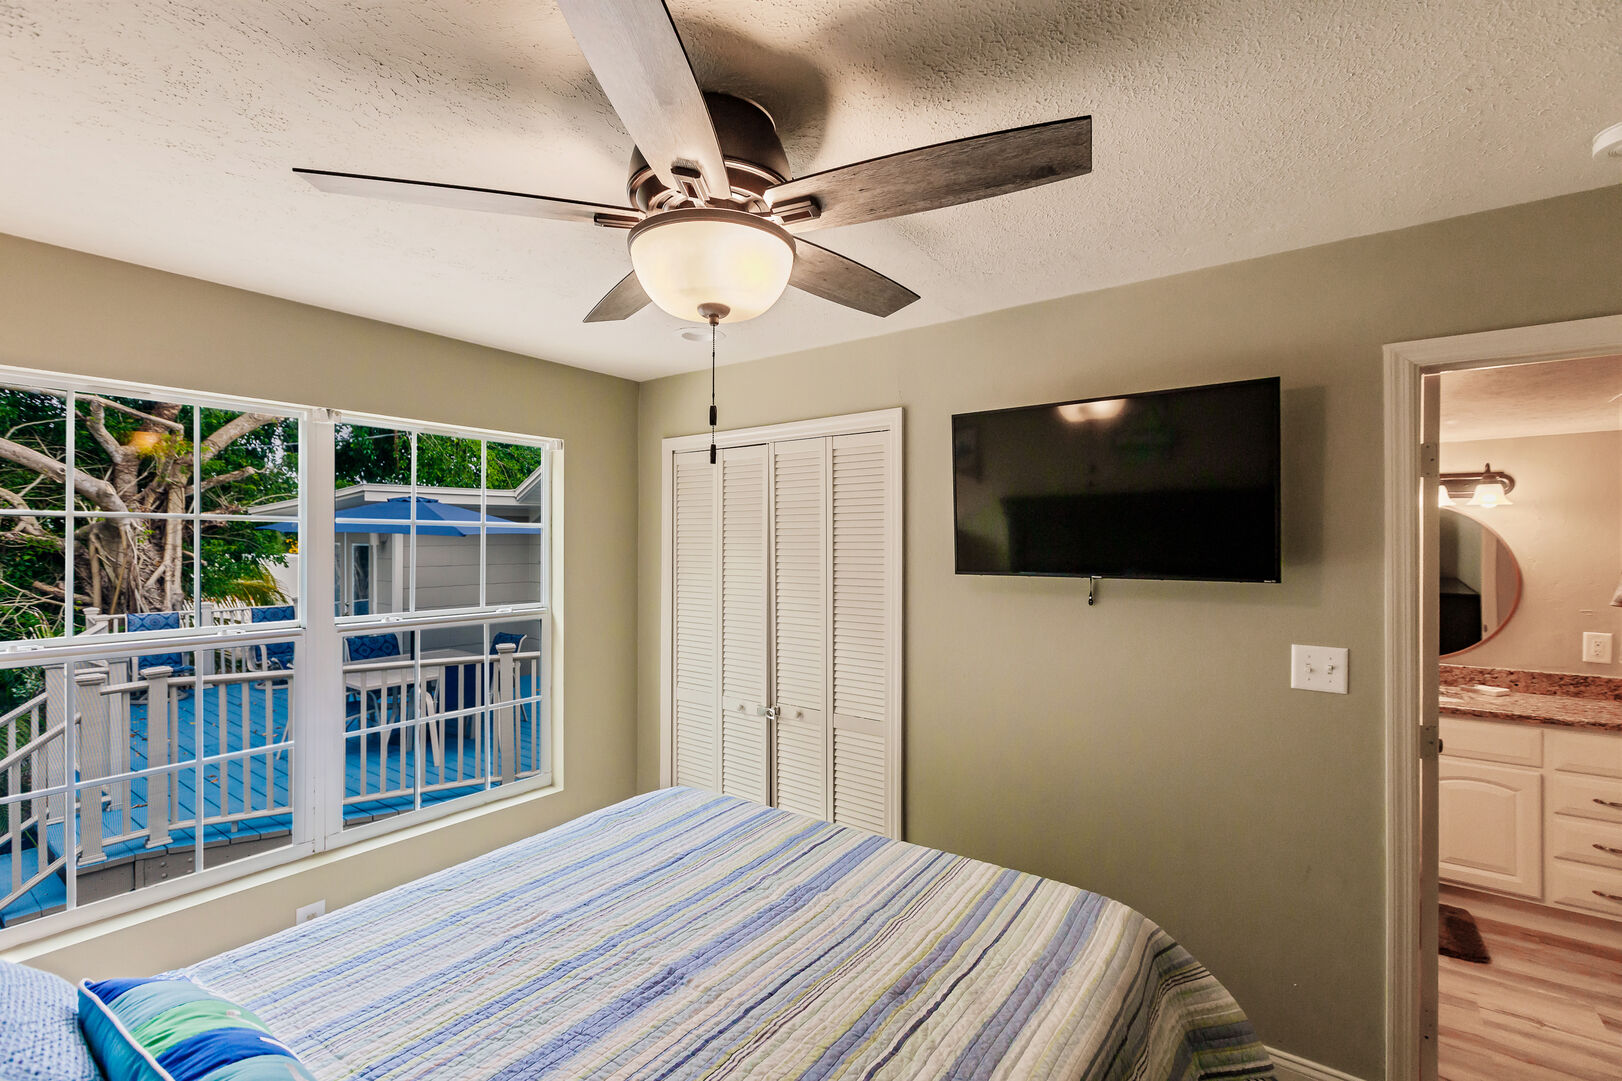 Beach Paradise Bedroom with View of Back Deck